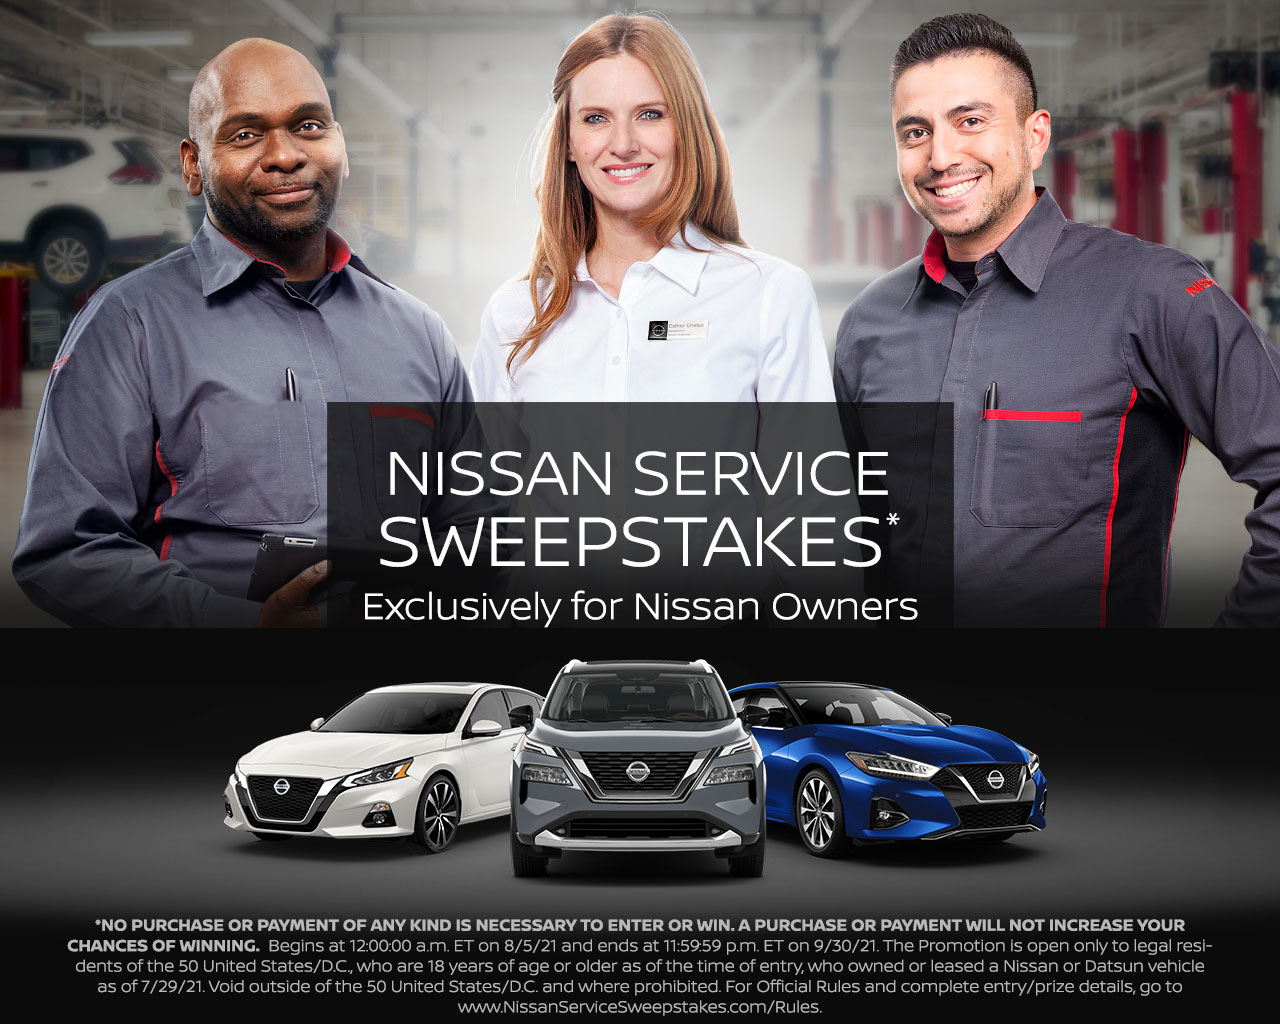 Nissan Service Sweepstakes*